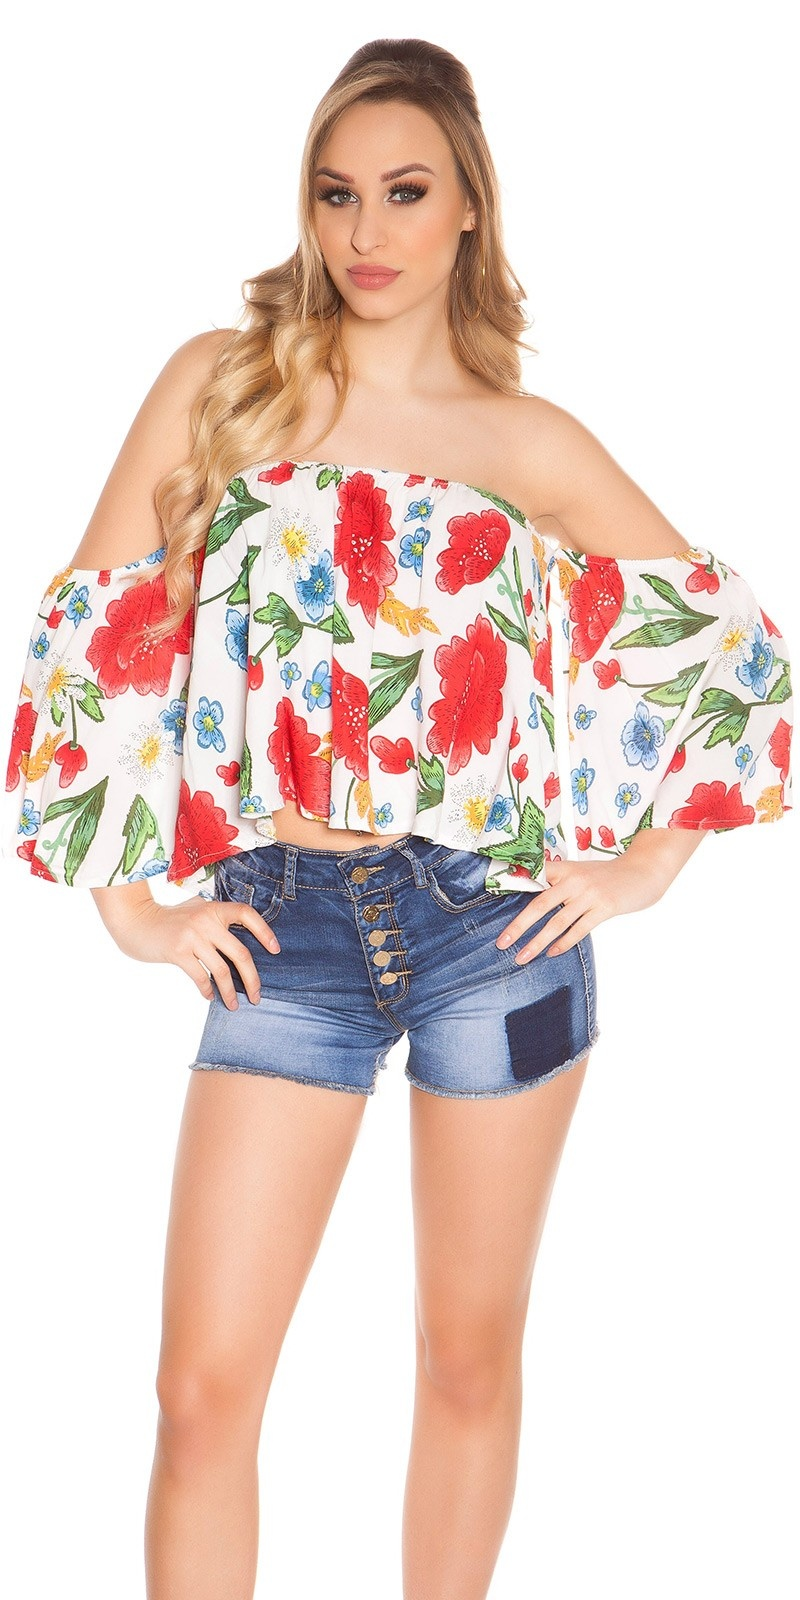 Sexy offshoulder top coachella-style wit